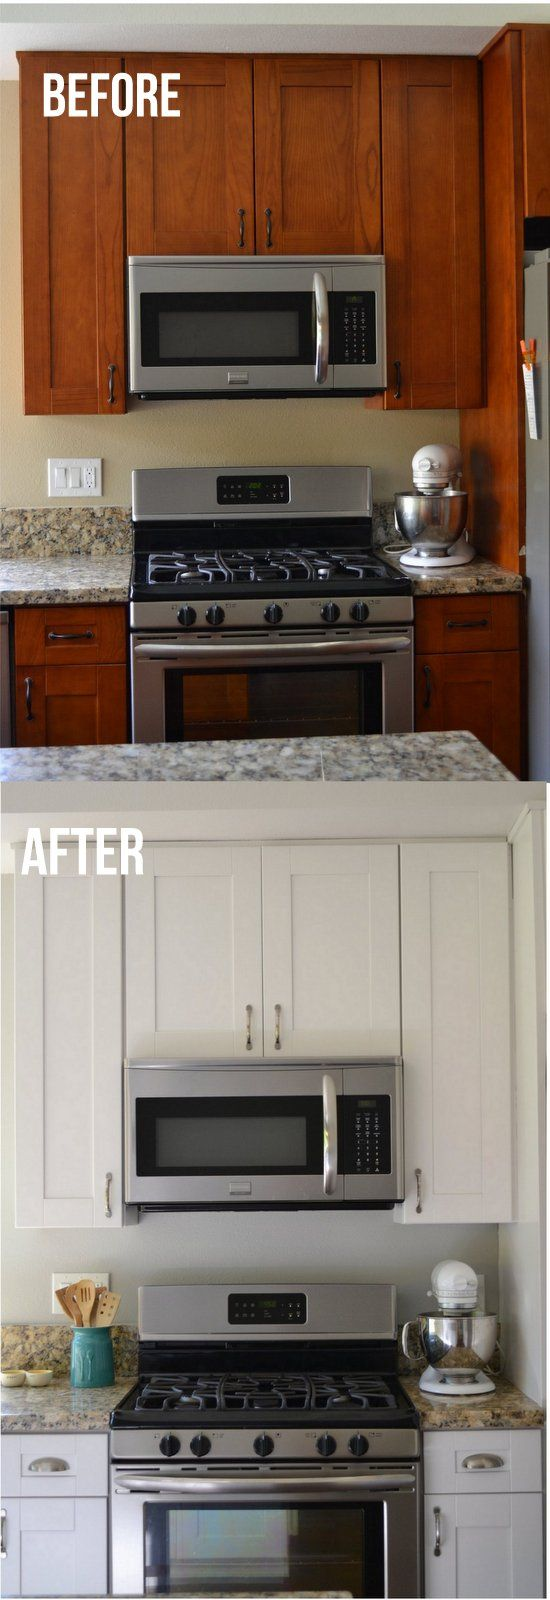 """Sherwin Williams """"Snowbound"""" on cabinets and """" Light French Gray"""" on walls looks great with stainless steel appliances in this fresh kitchen re-do."""